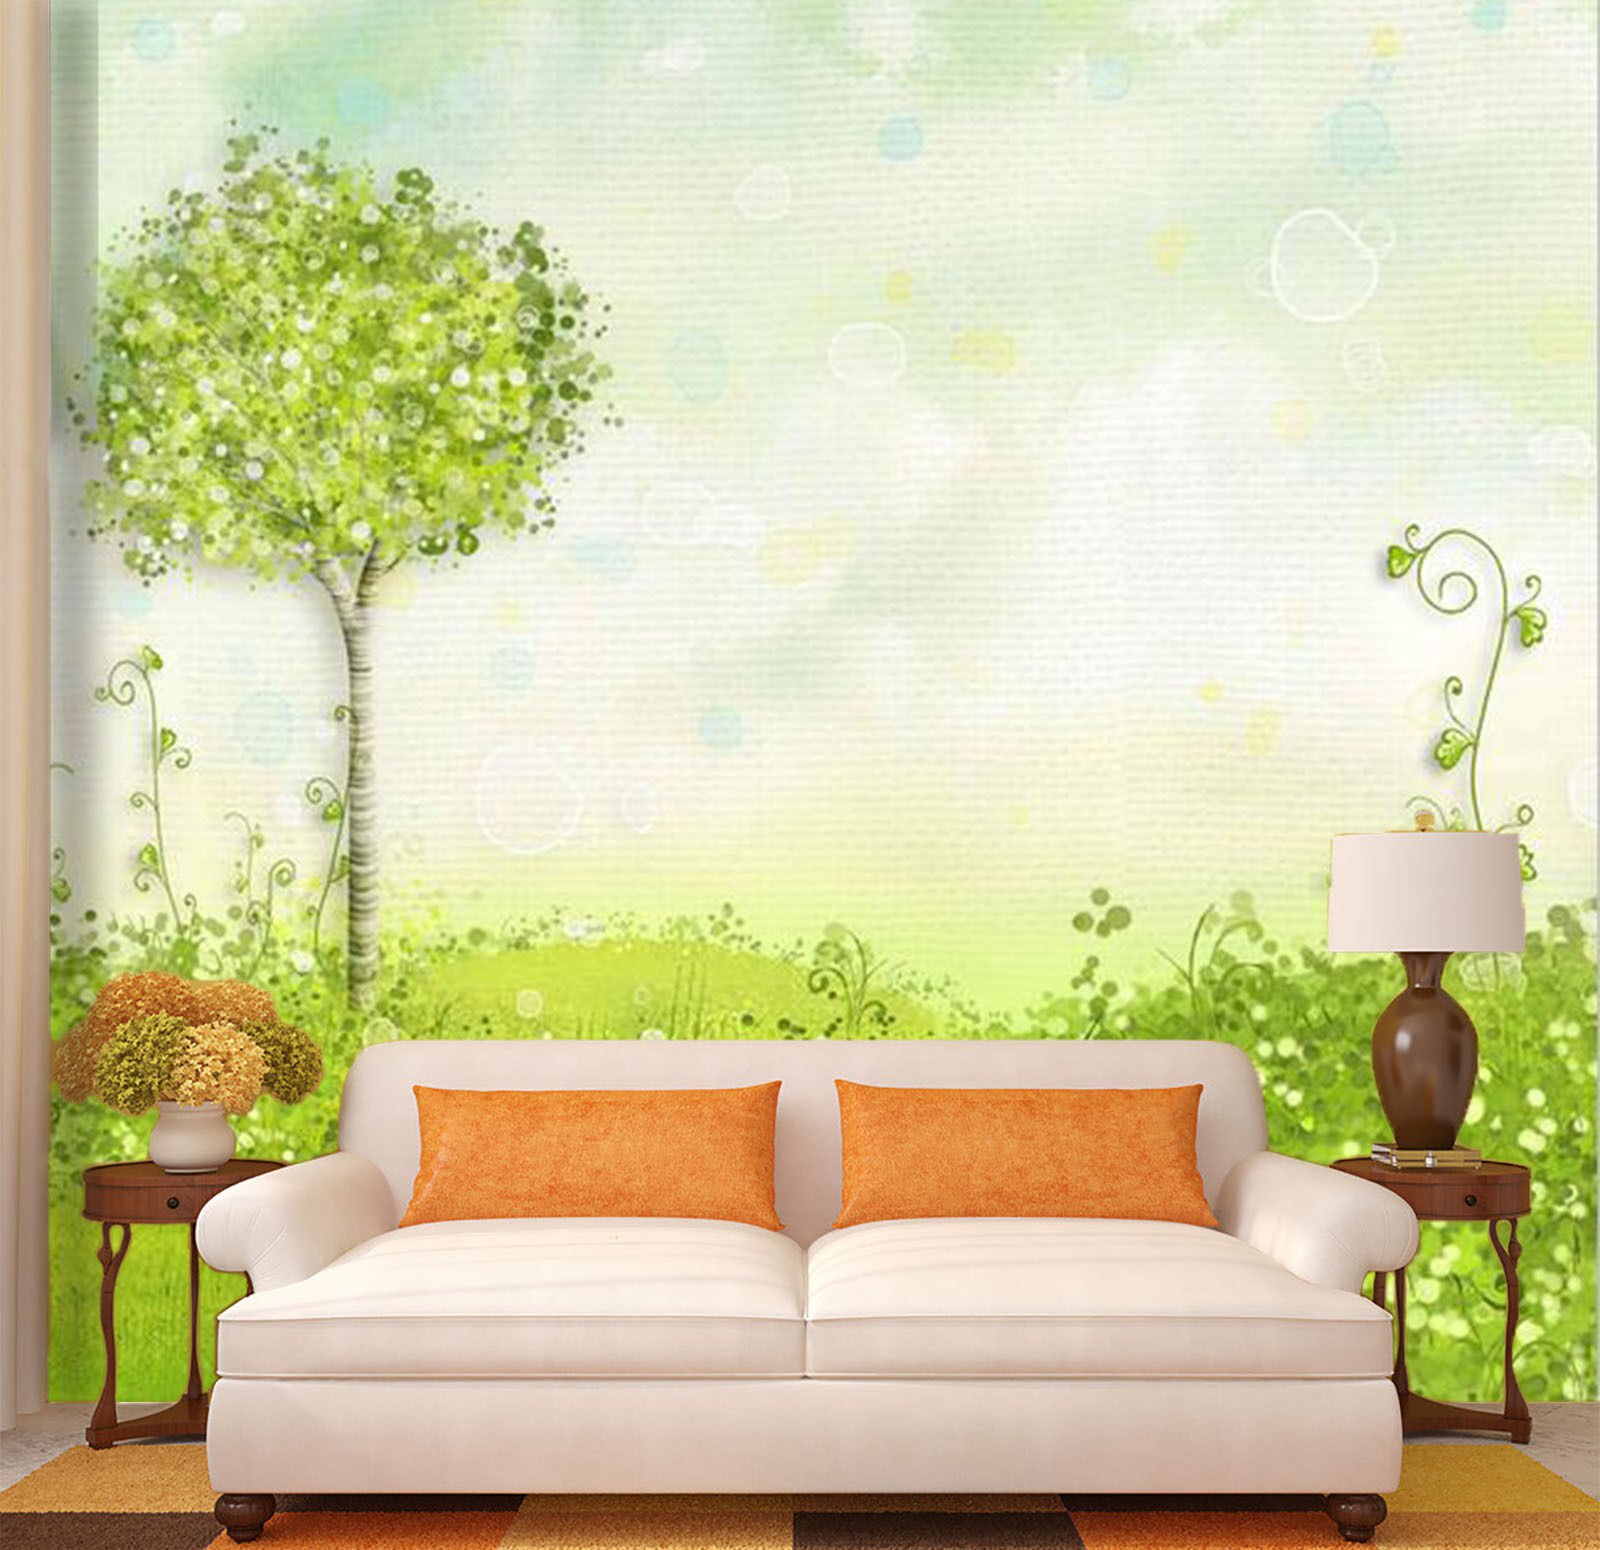 3D Cute little tree 6776 Wall Paper Print Wall Decal Deco Indoor Wall Murals